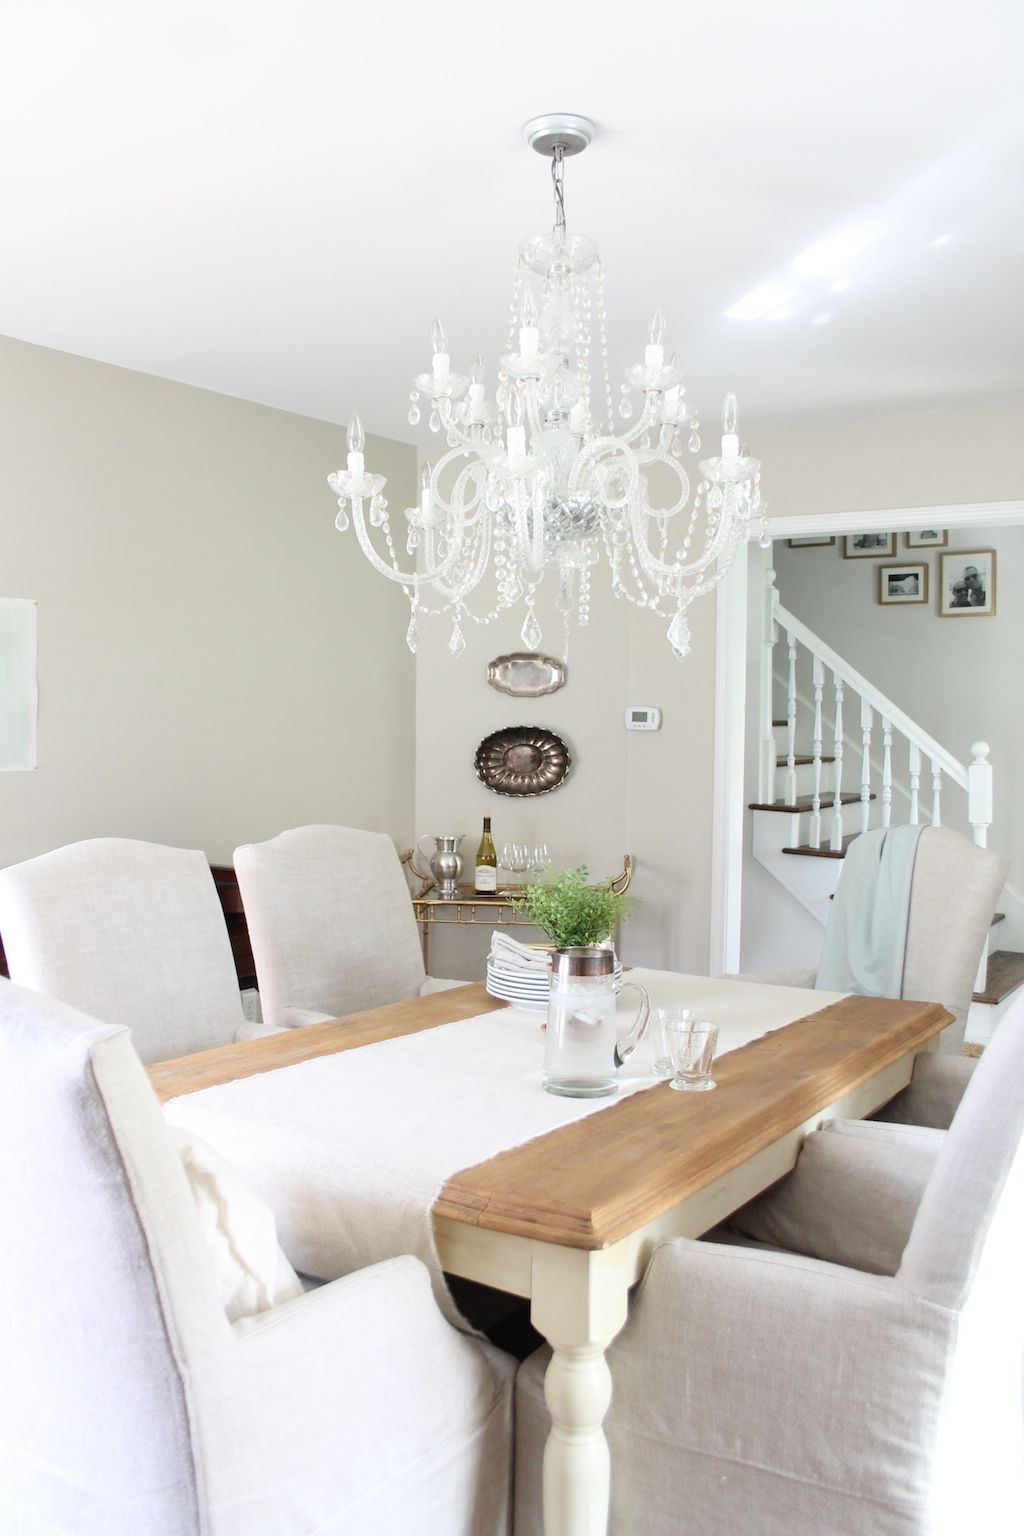 my tips to a luxury home for less, when to spend and how to blend ...